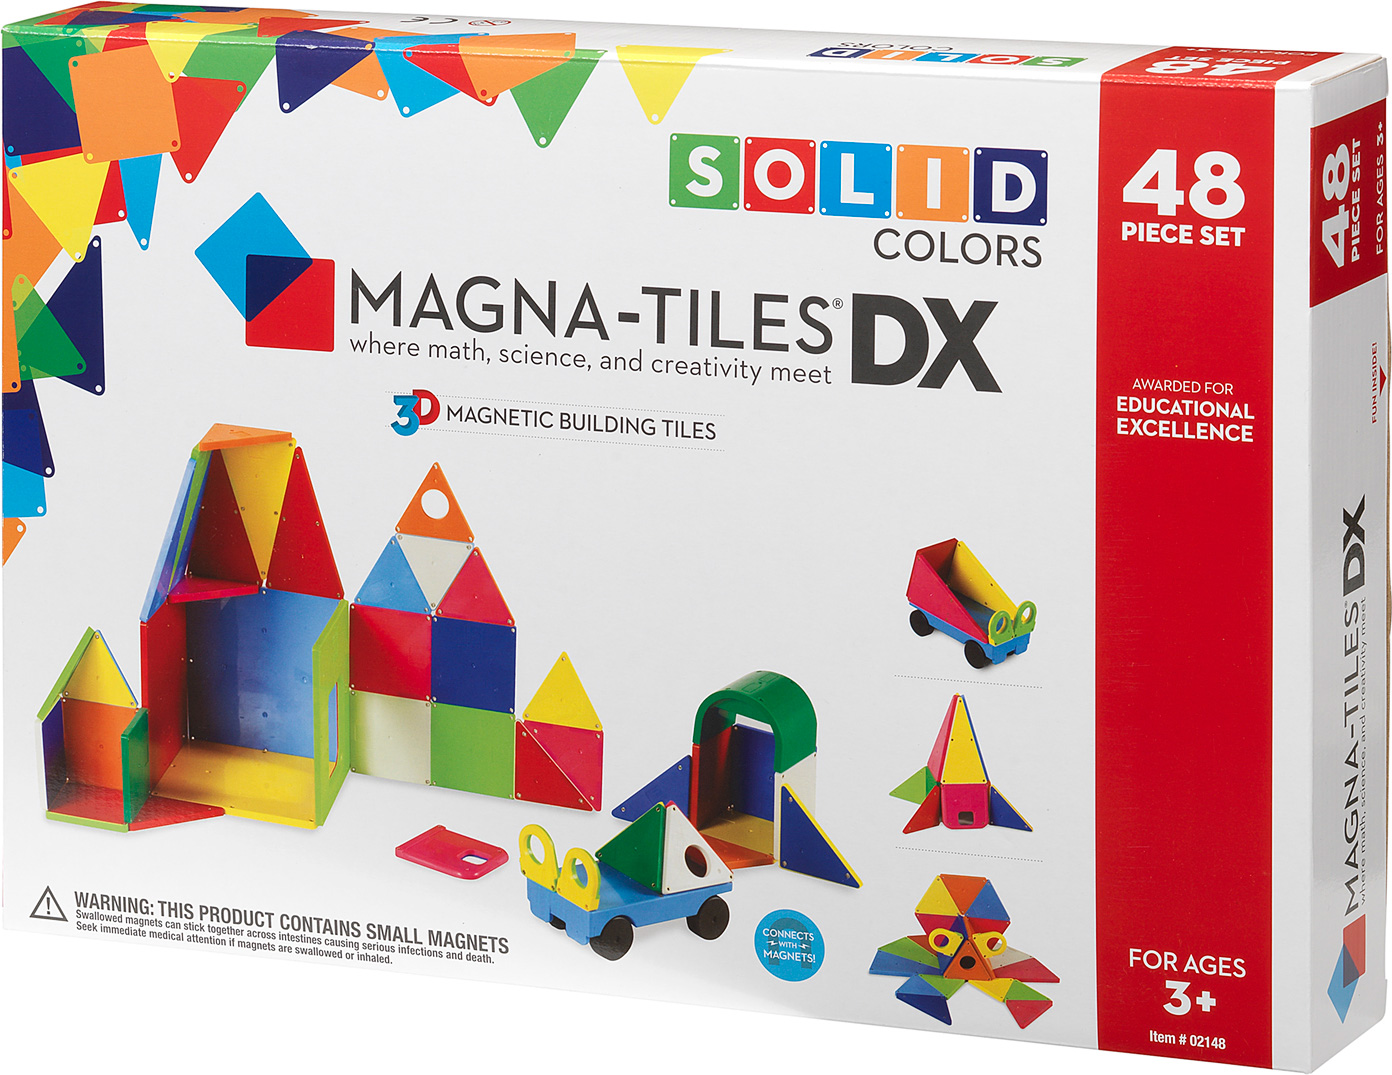 magna tiles solid colors 48 piece dx set young minds toys